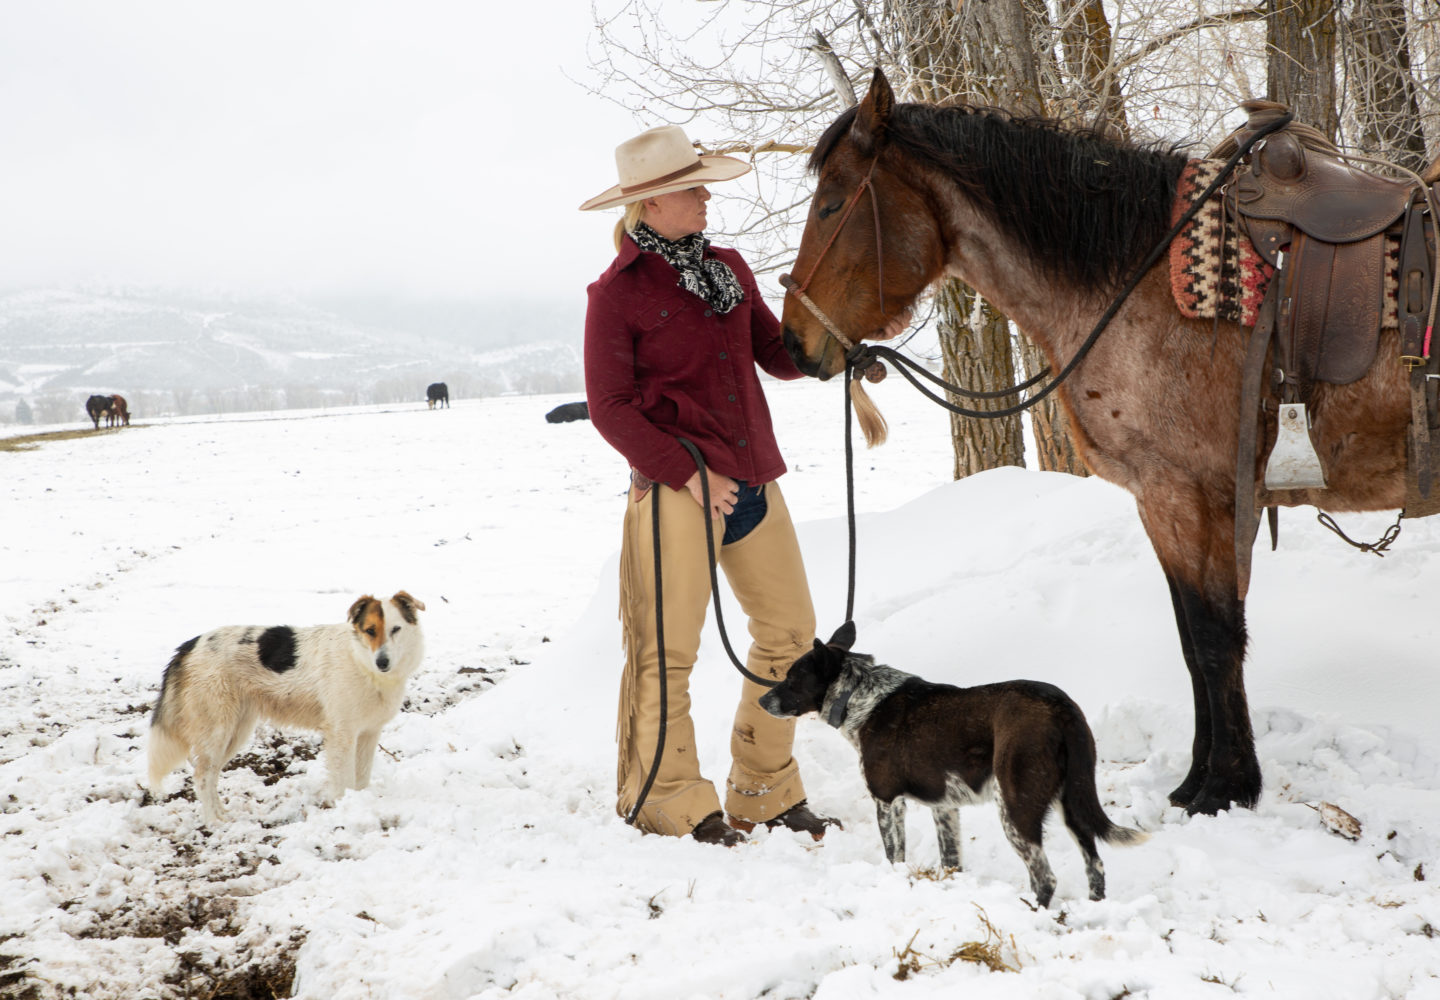 sky clark images in the snow with horse and dogs